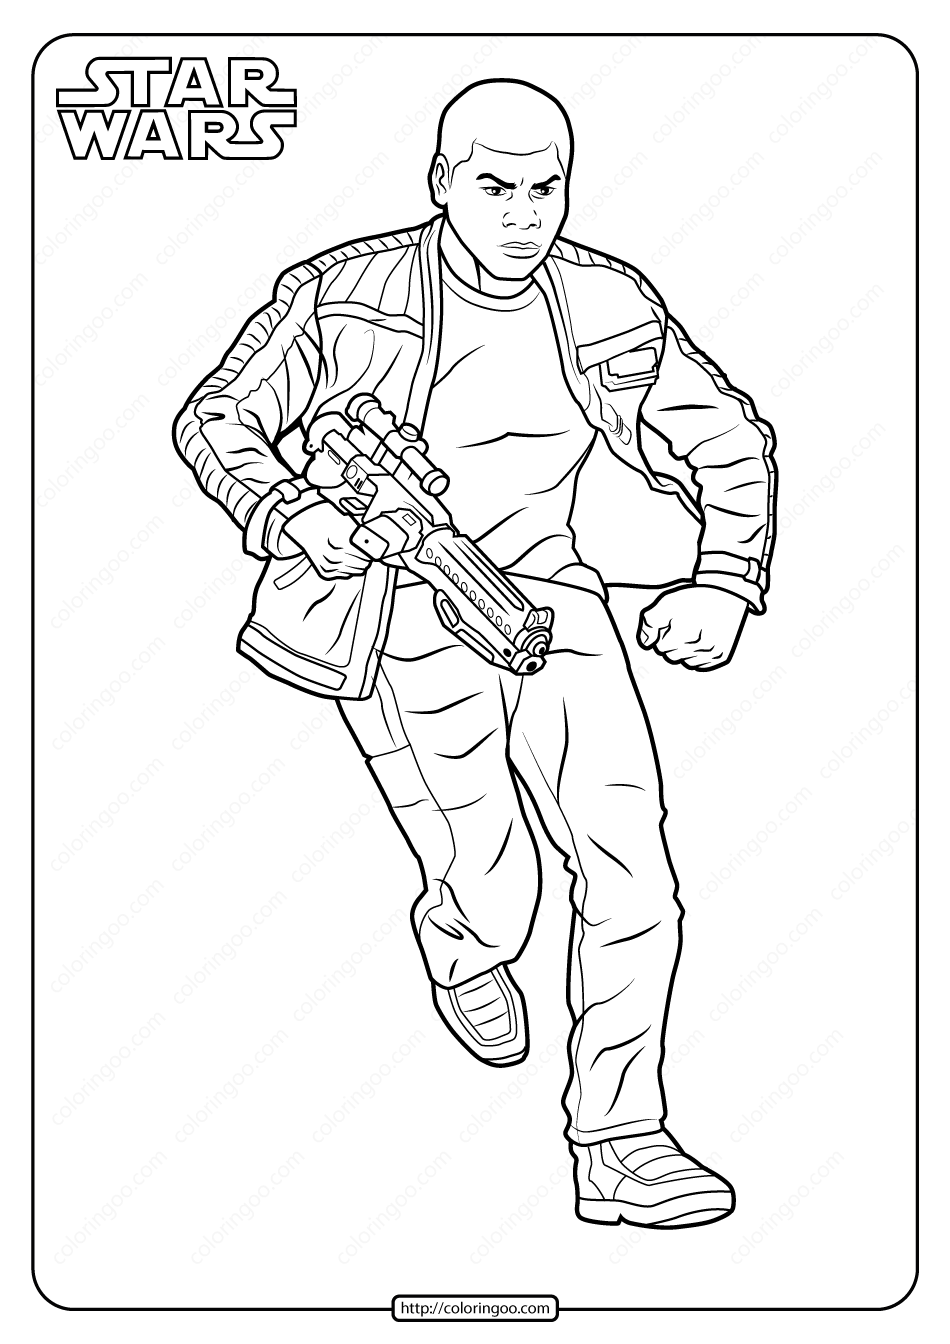 Printable Star Wars Finn Coloring Pages Star Wars Coloring Book Star Wars Colors Finn Star Wars